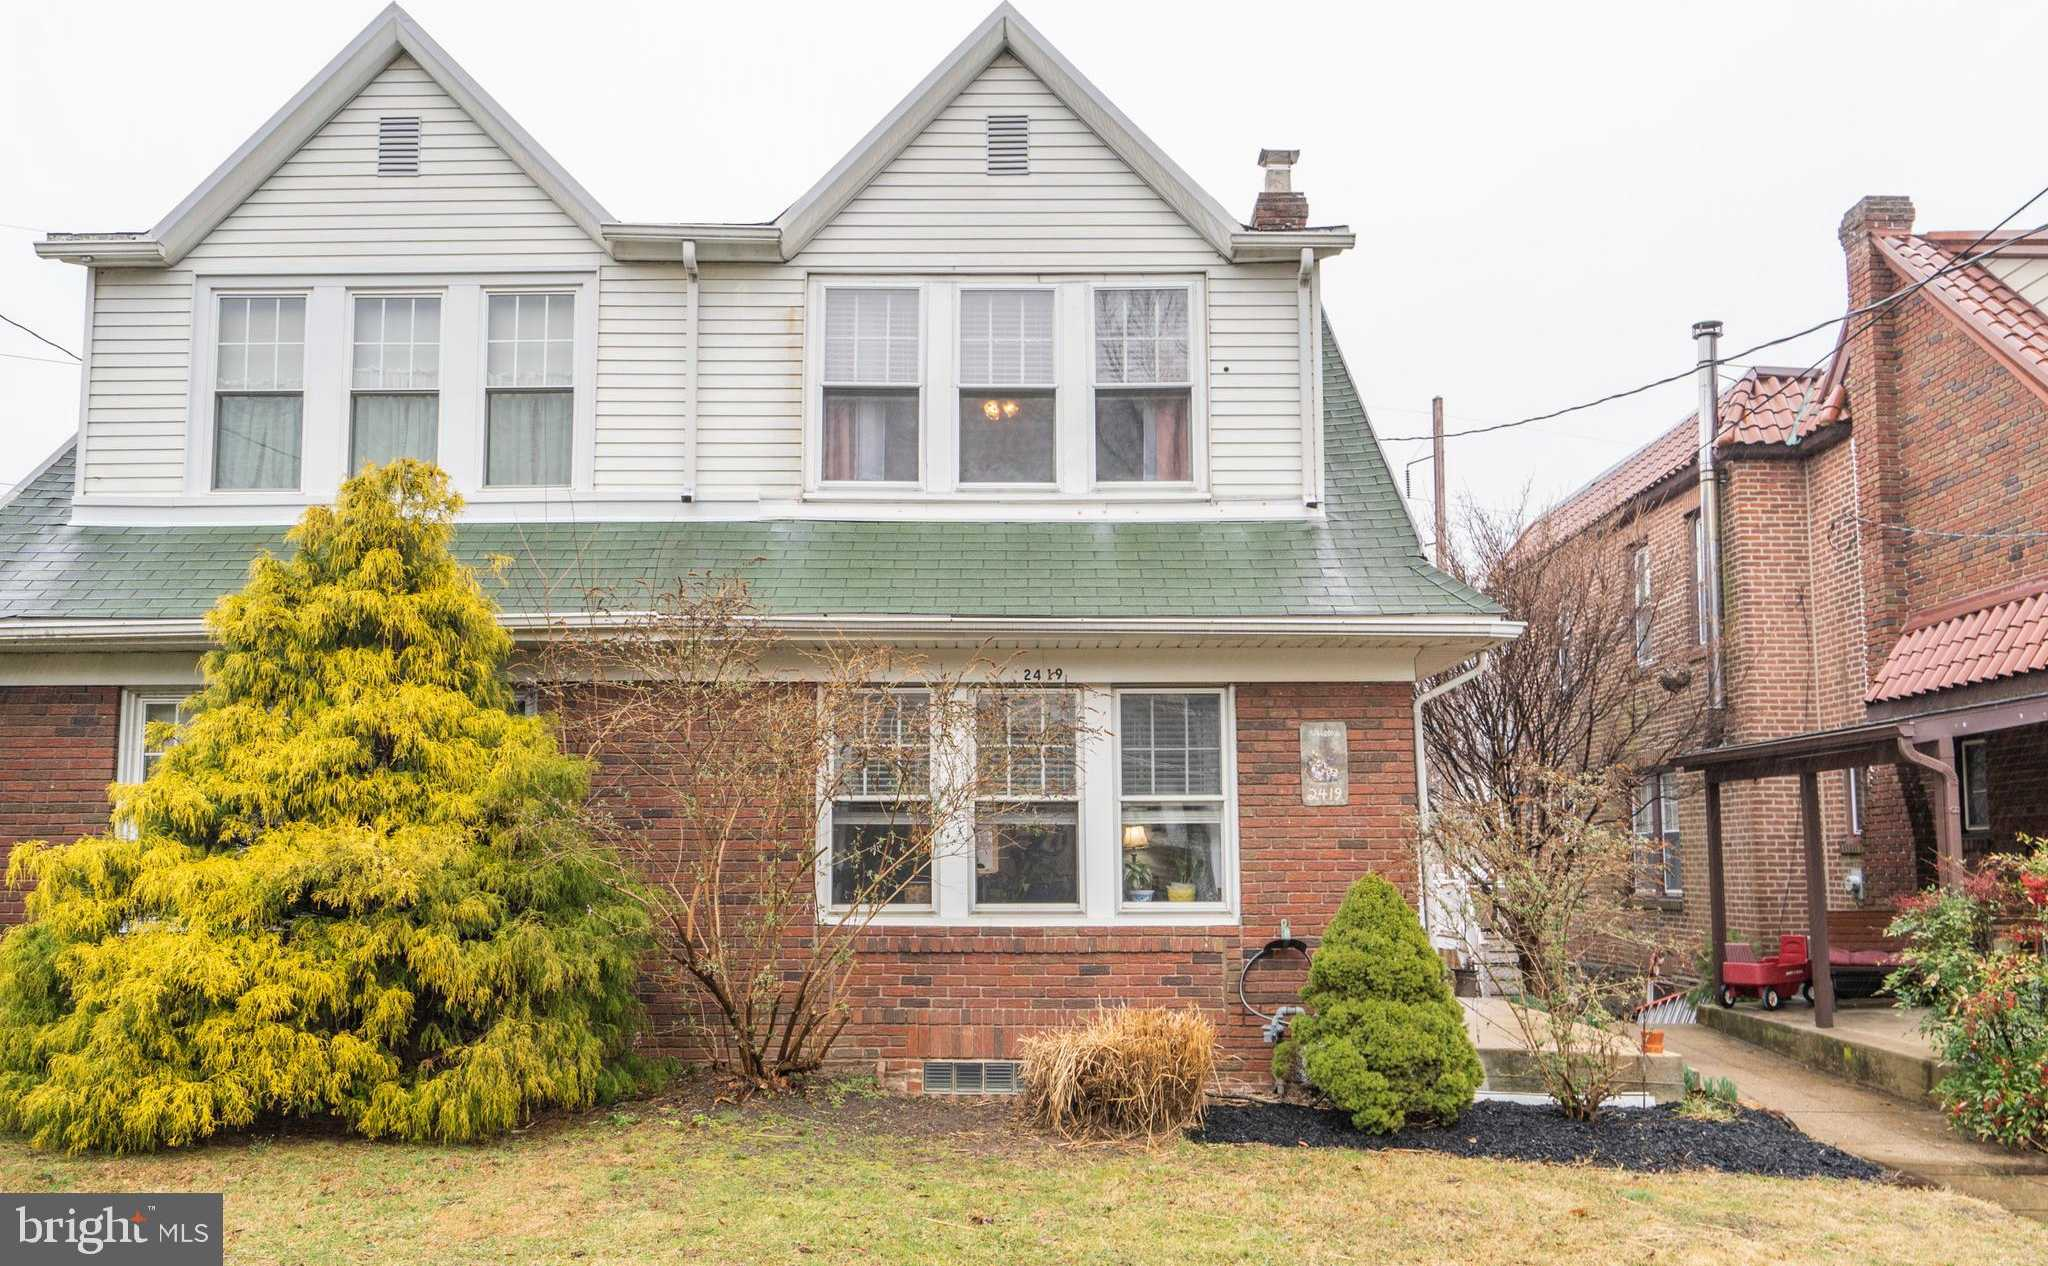 $312,000 - 3Br/3Ba -  for Sale in Merwood Park, Havertown